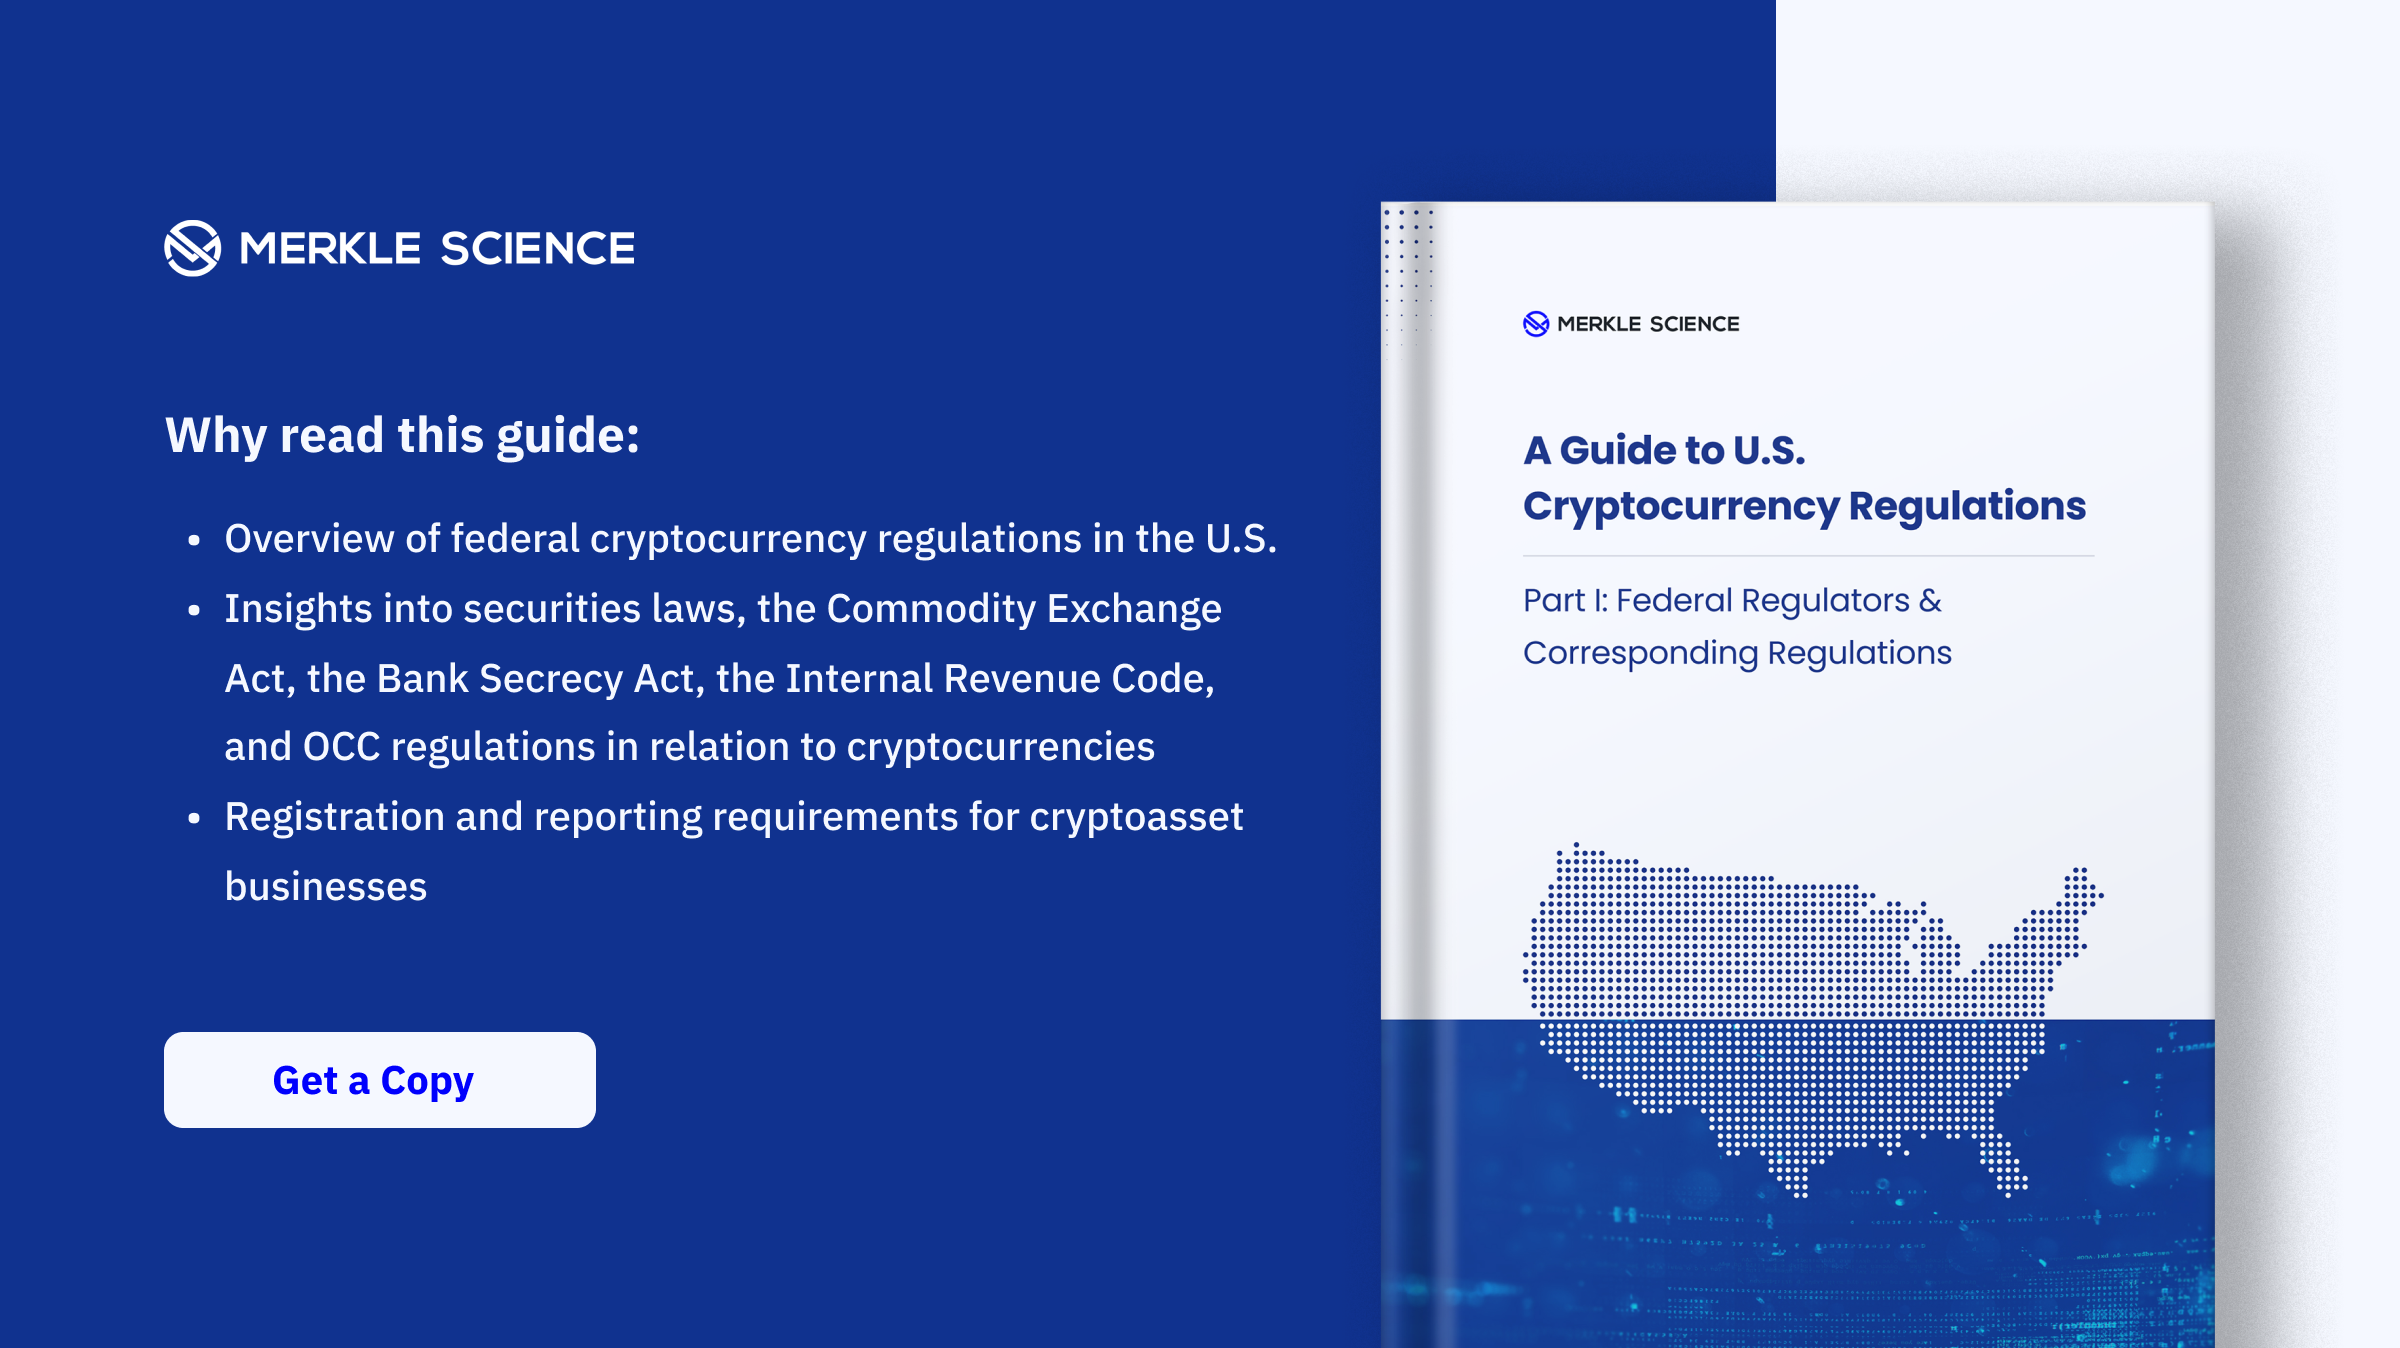 A Guide to the U.S. Regulations for Cryptoasset Businesses